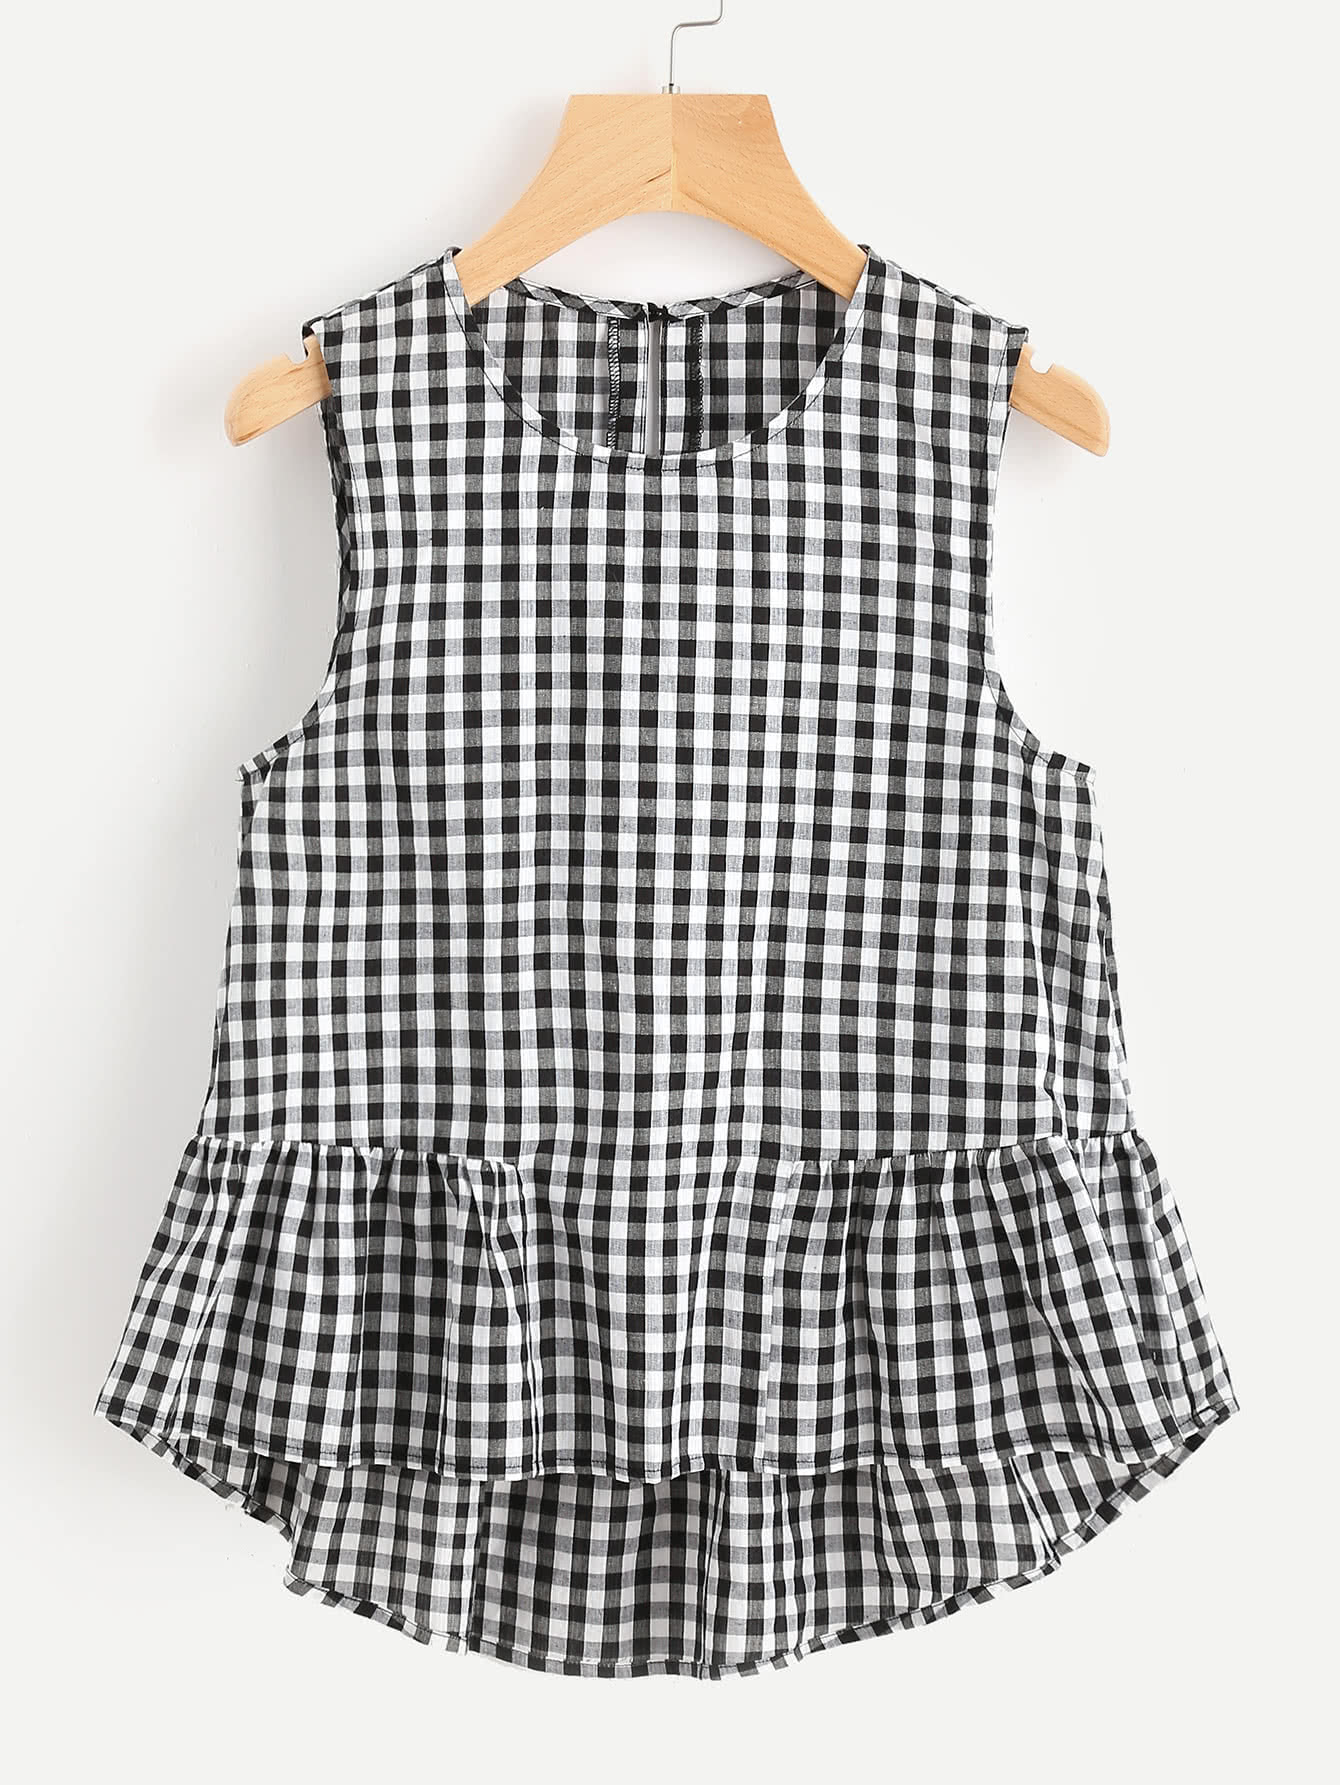 Buttoned Keyhole Tiered Hem Gingham Shell Top scallop ruffle hem buttoned keyhole back shell top